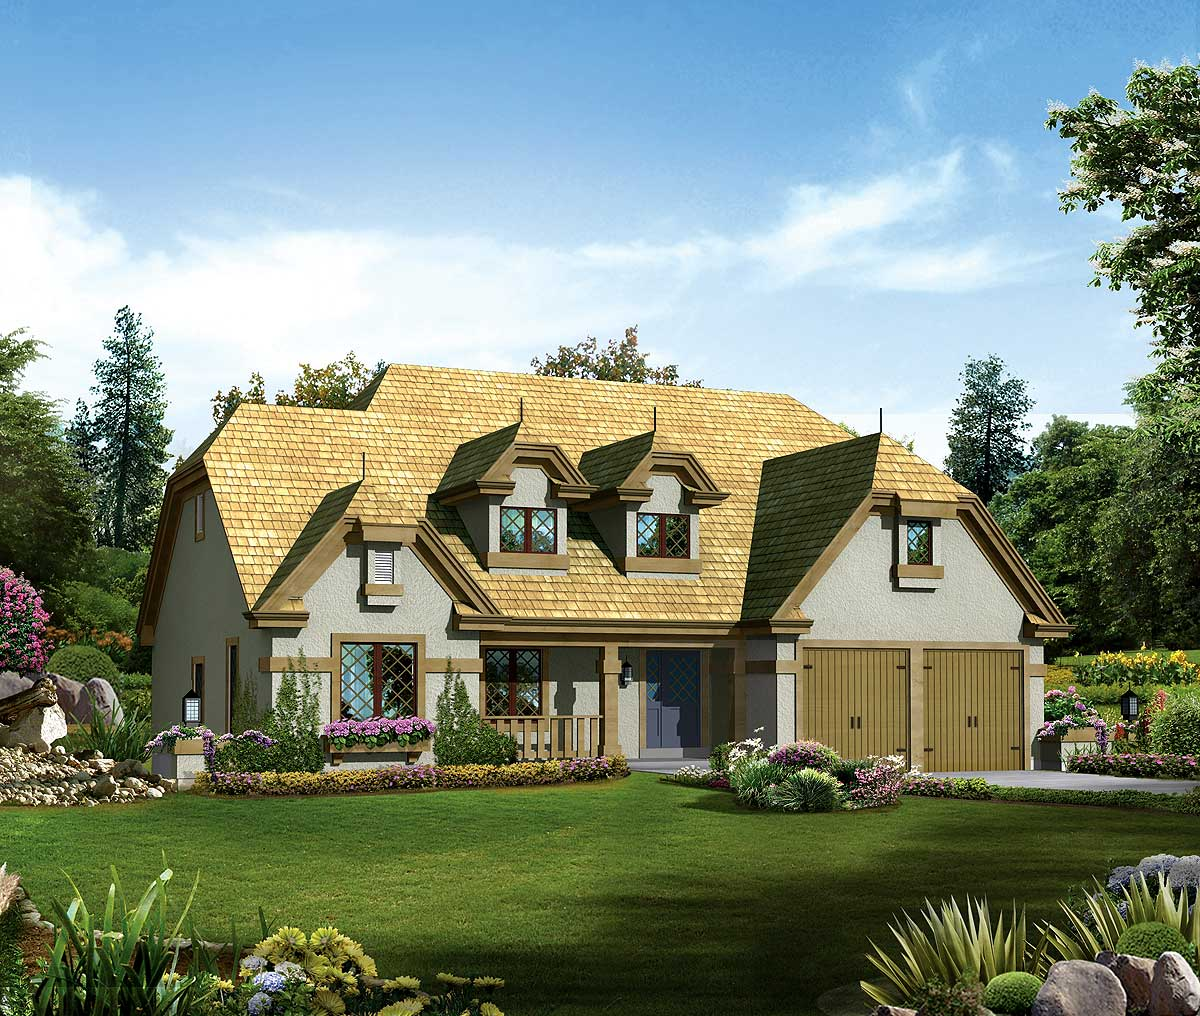 Old World Home Plan - 57242HA